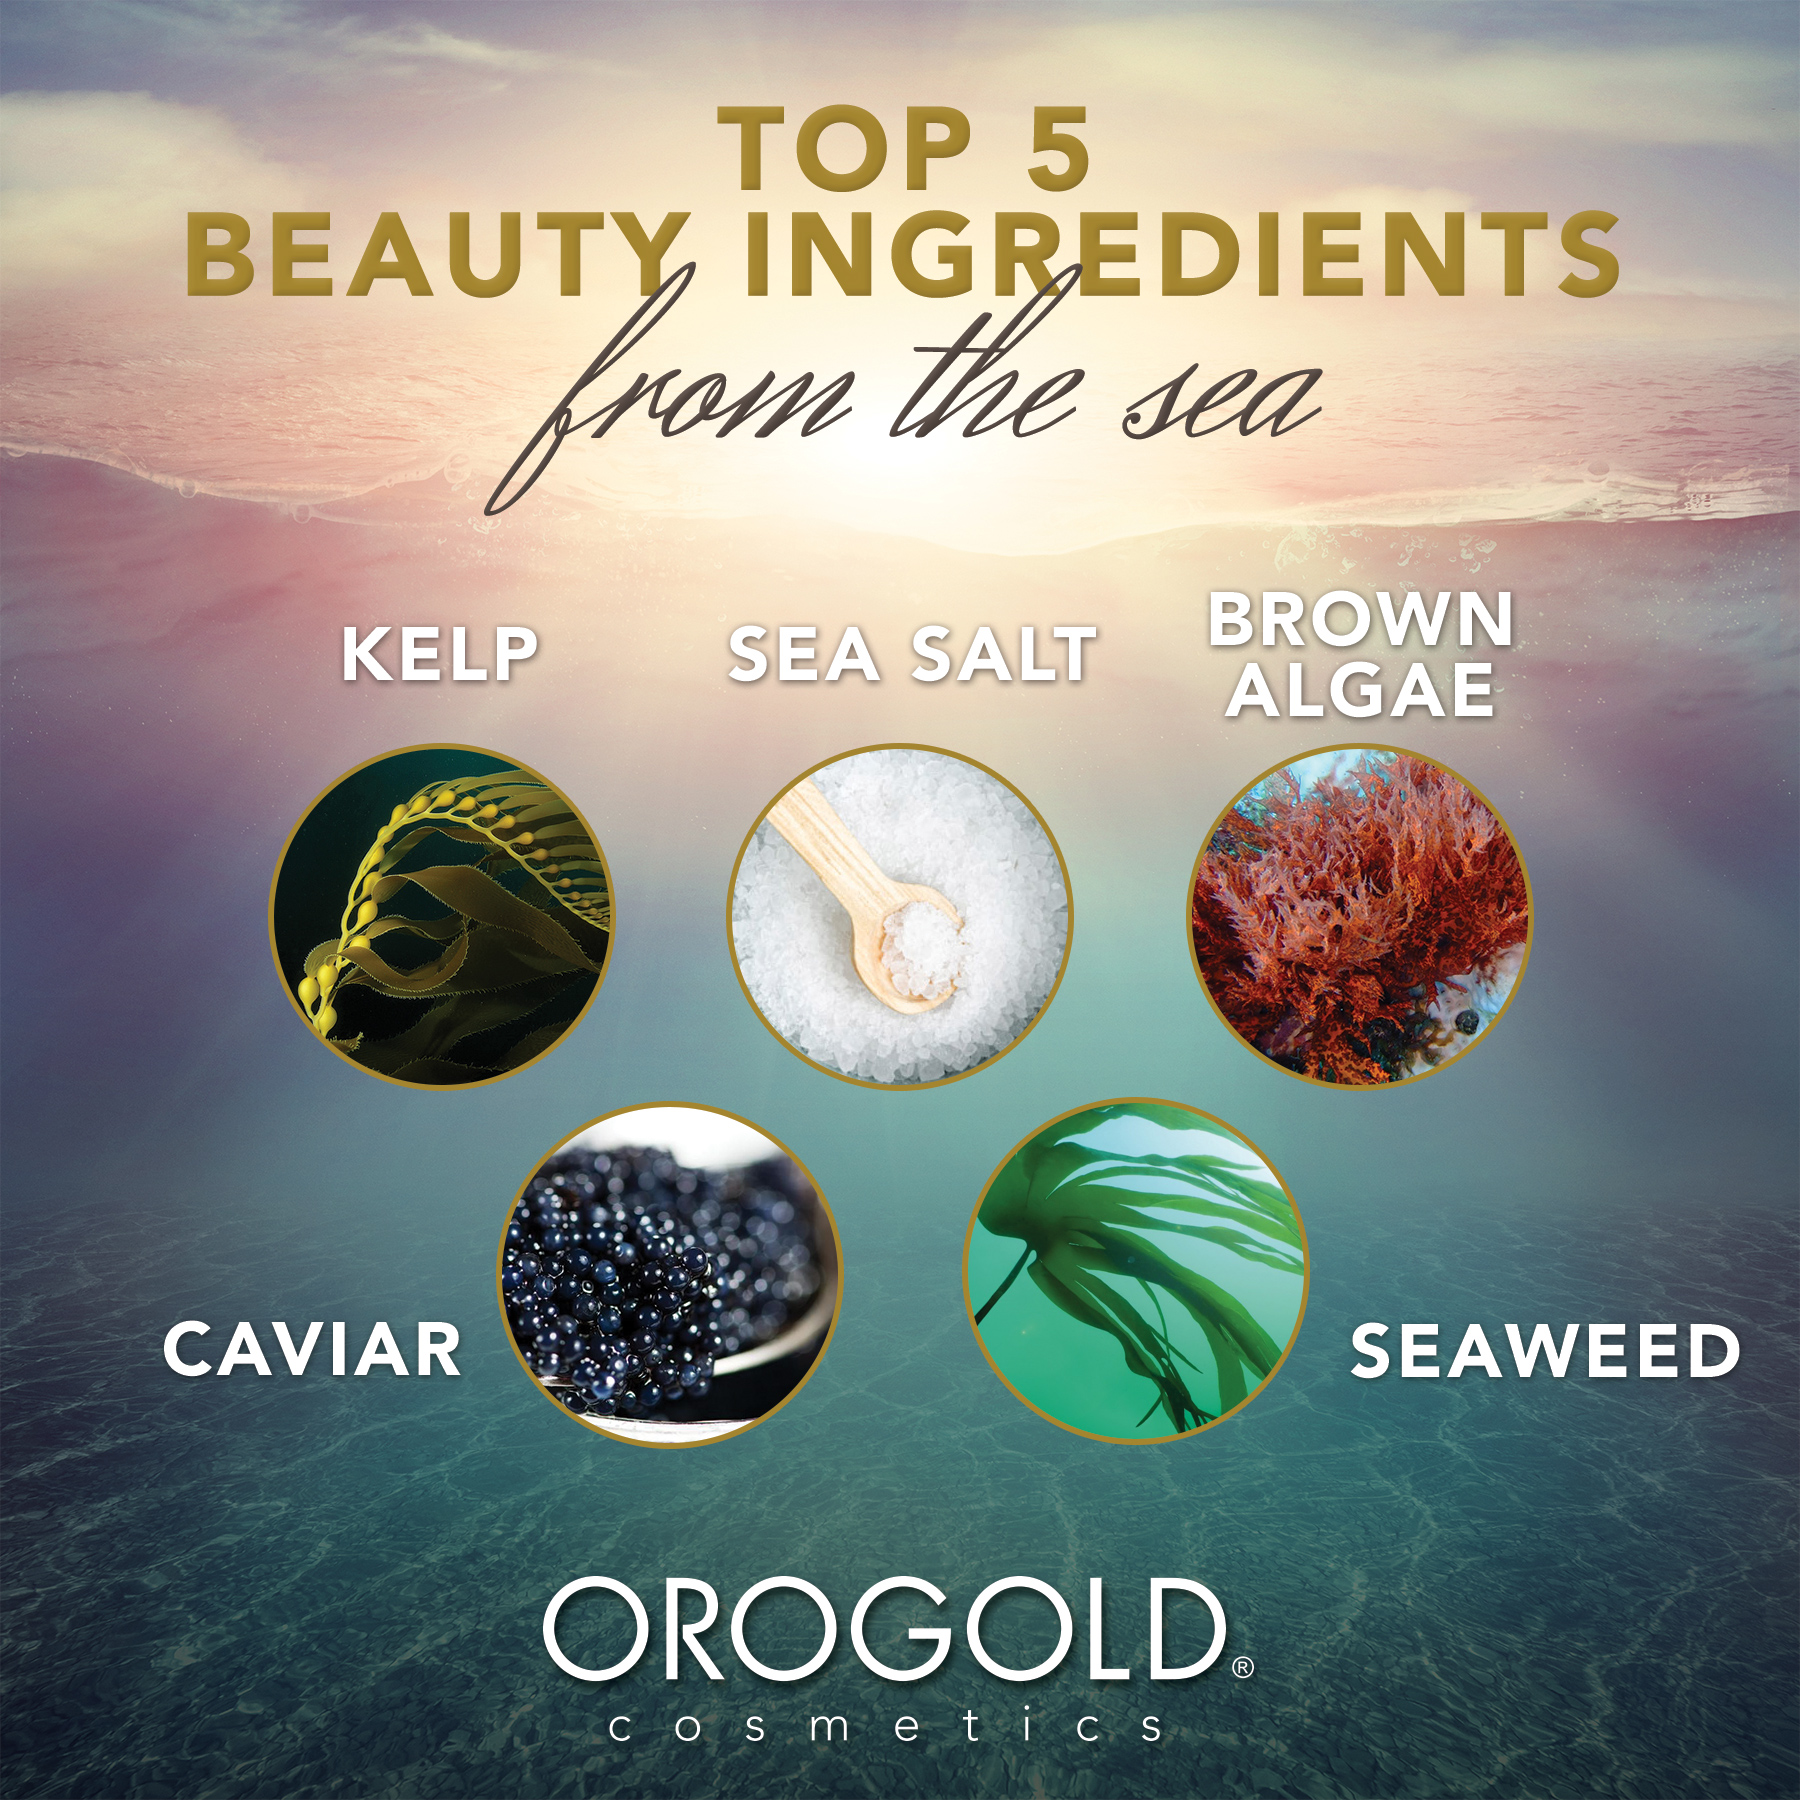 A beautiful image showing the top 5 ingredients from the sea.